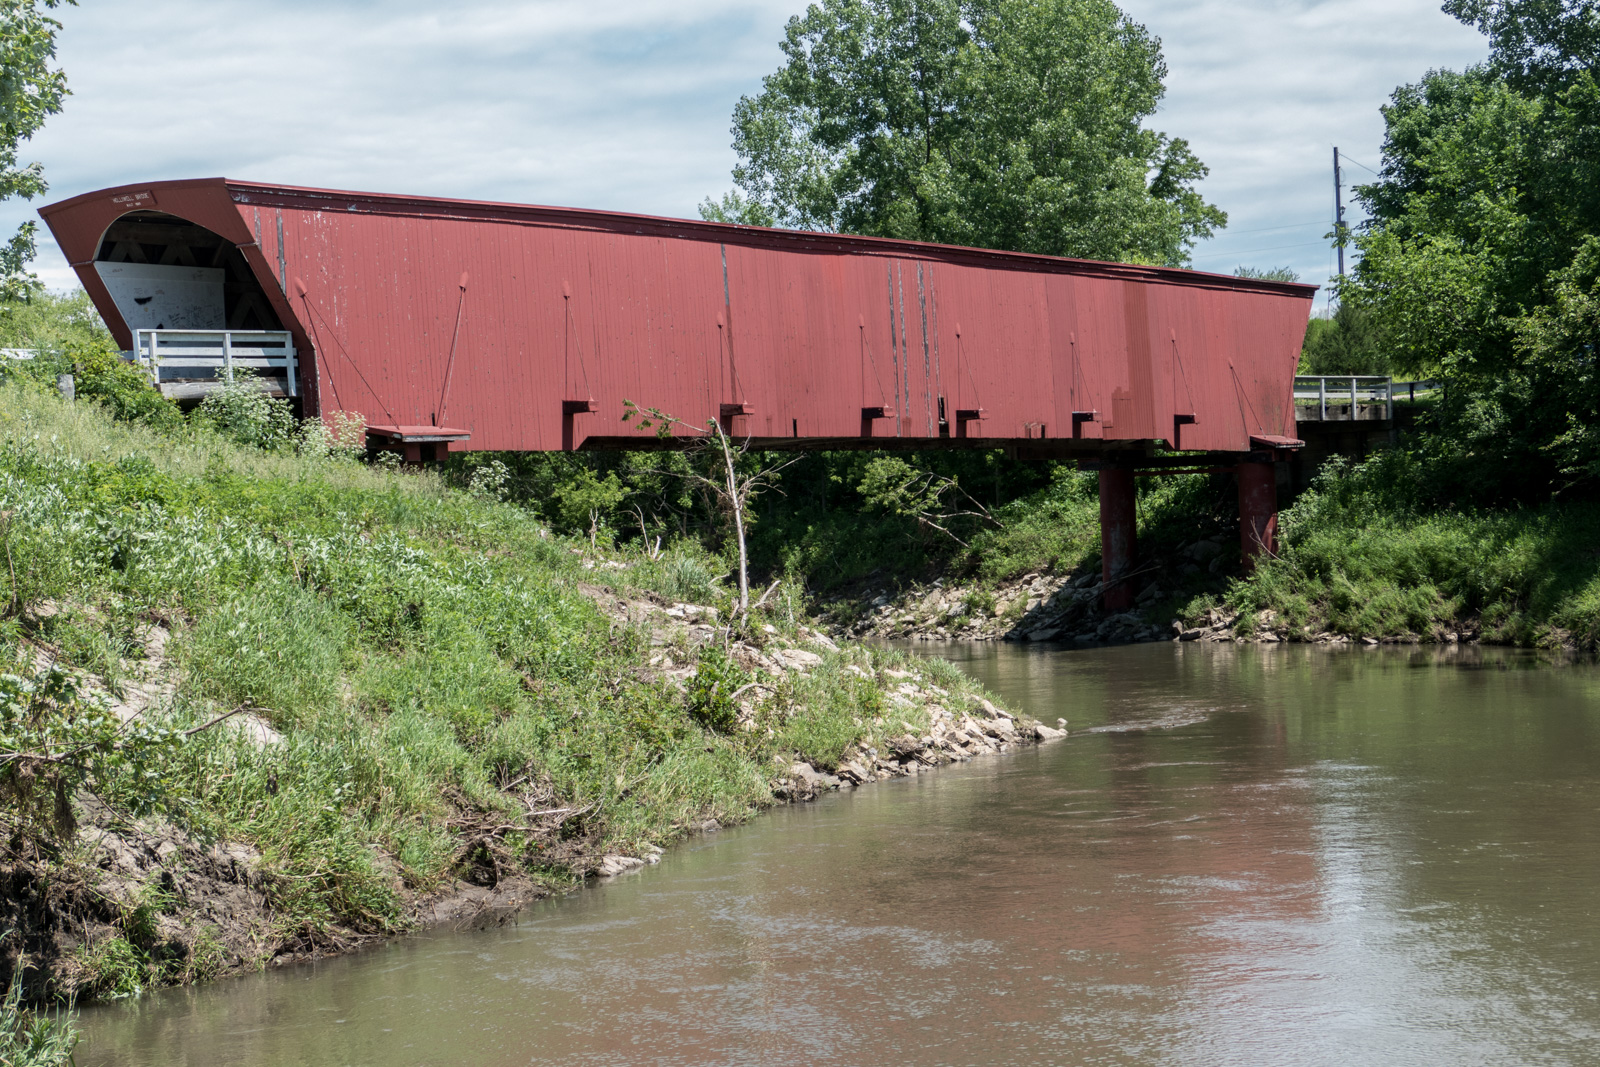 Holliwell Bridge near Winterset, IA